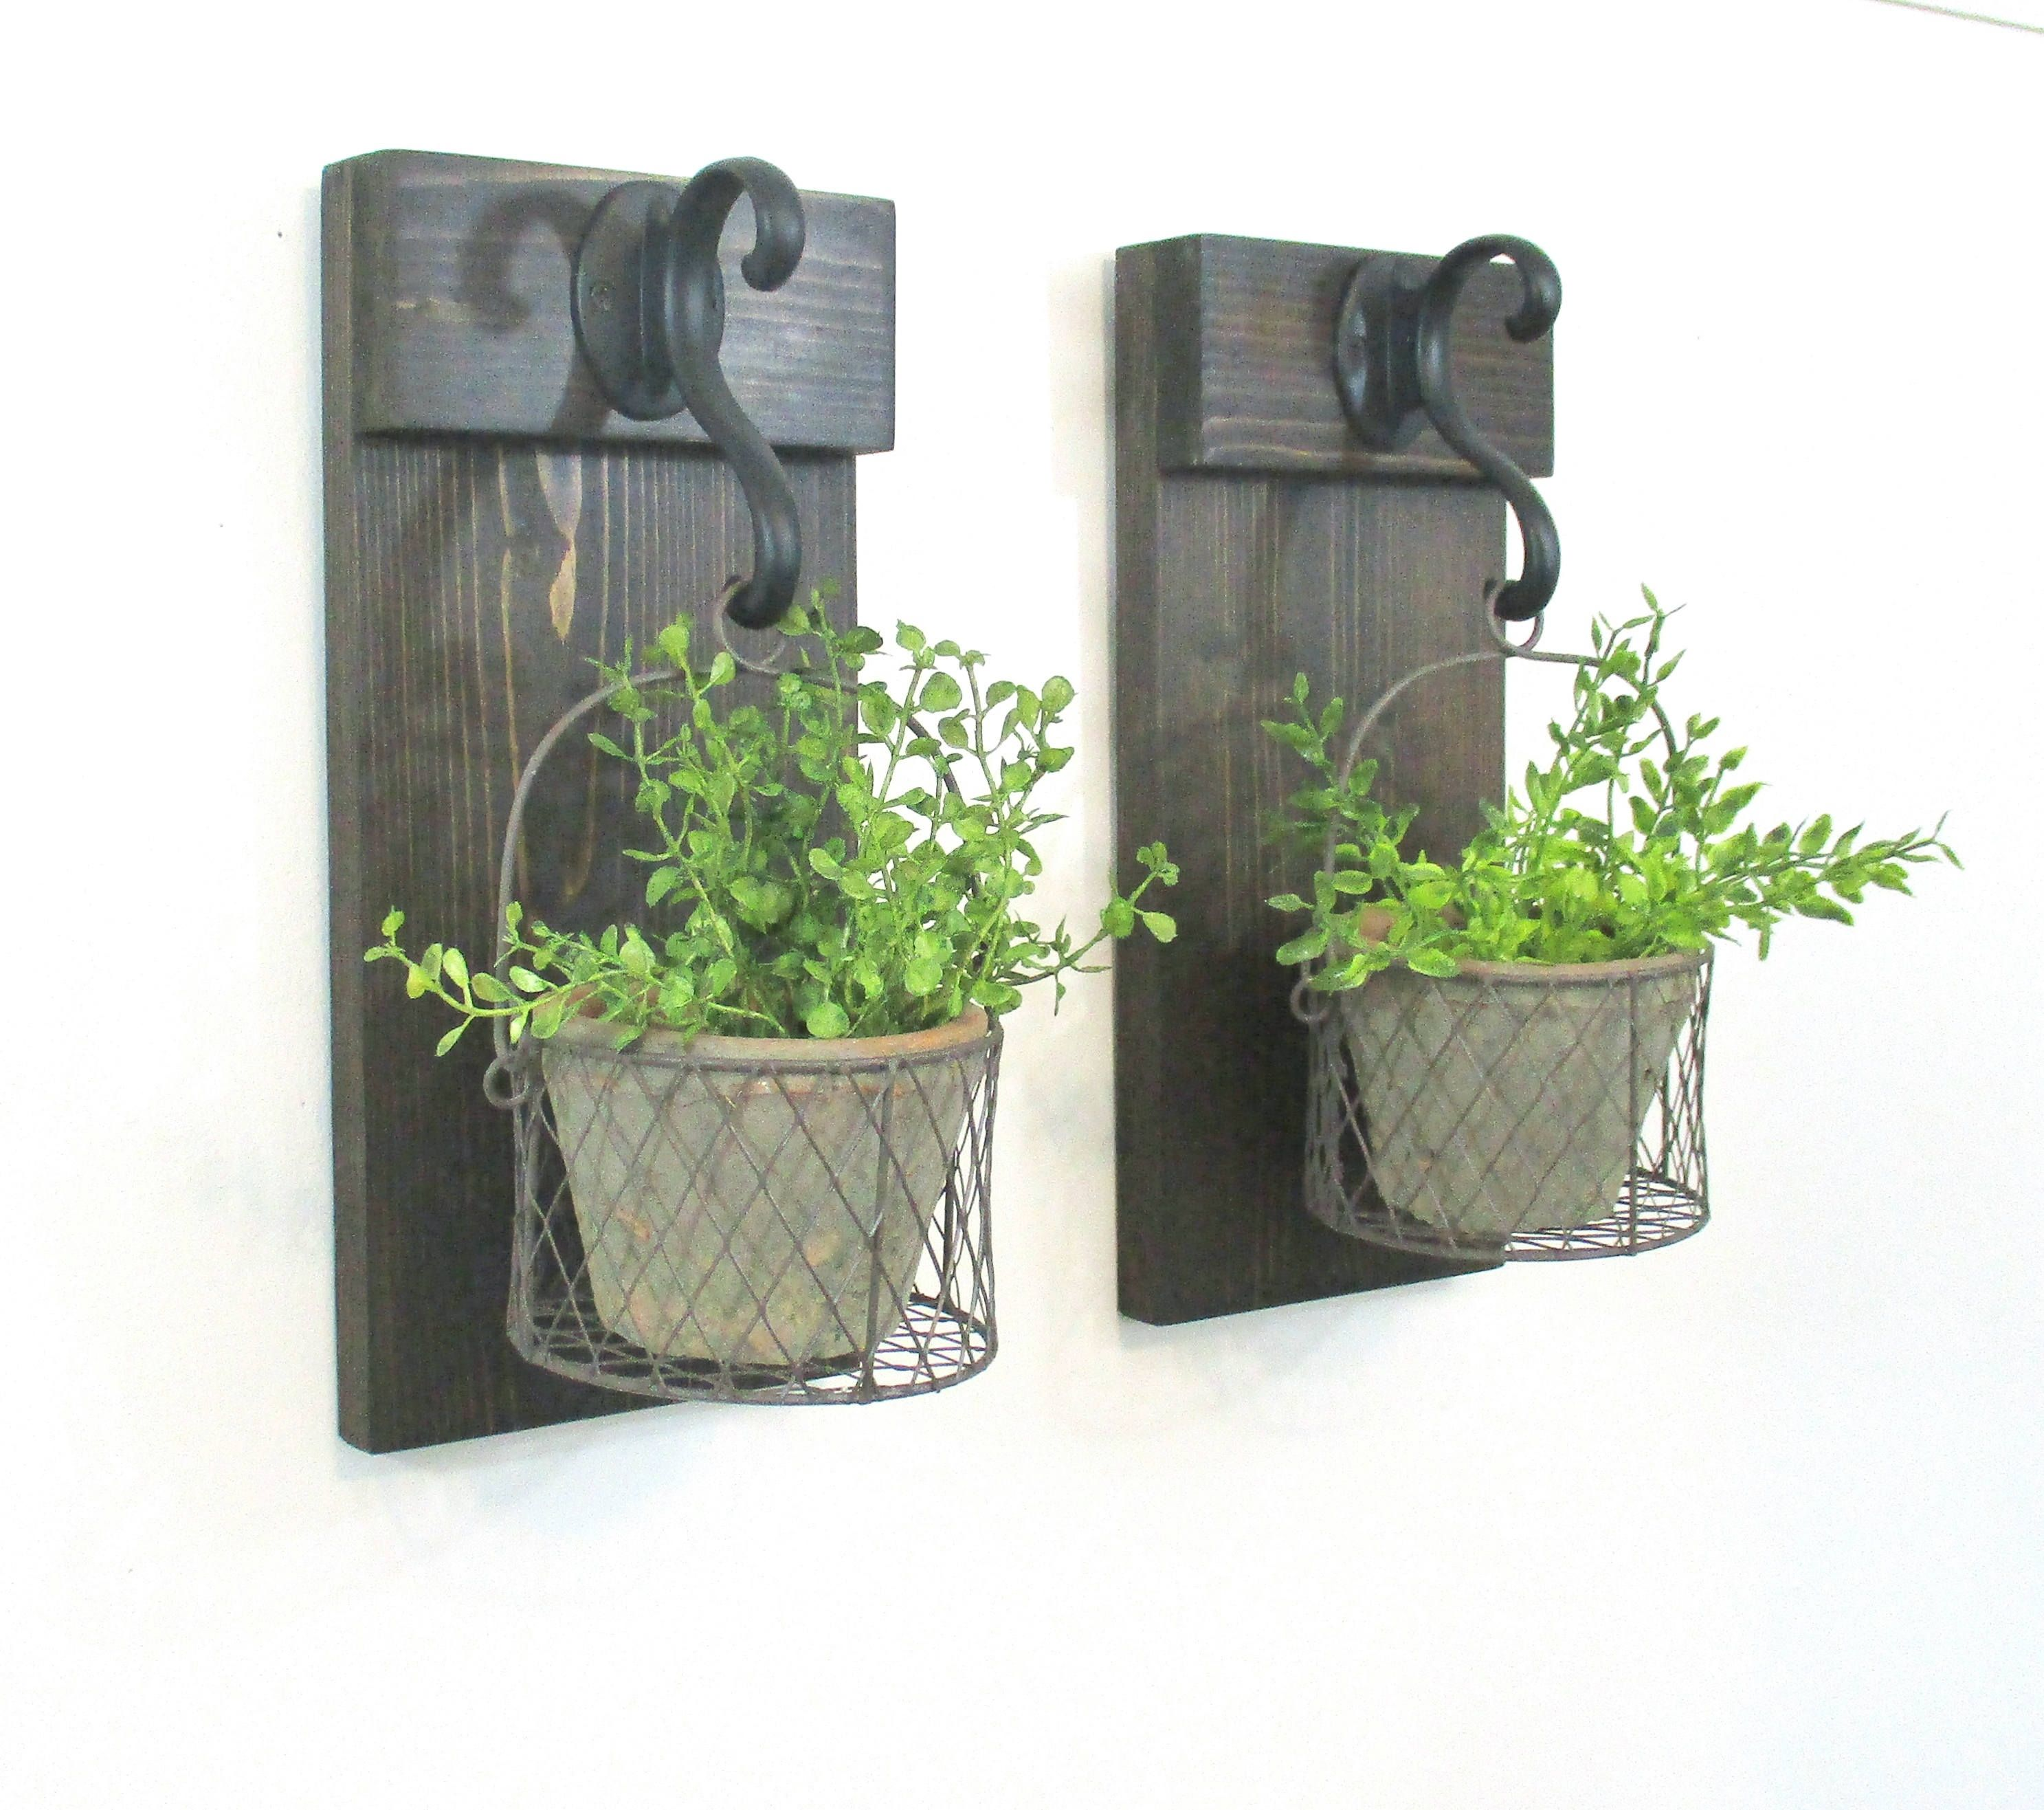 Farmhouse Wall Decor Hanging Terra Cotta Pot Rustic Pot In Wire Basket Rustic Home Decor Farmhouse Basket Wall Decor Farmhouse Wall Sconces Baskets On Wall